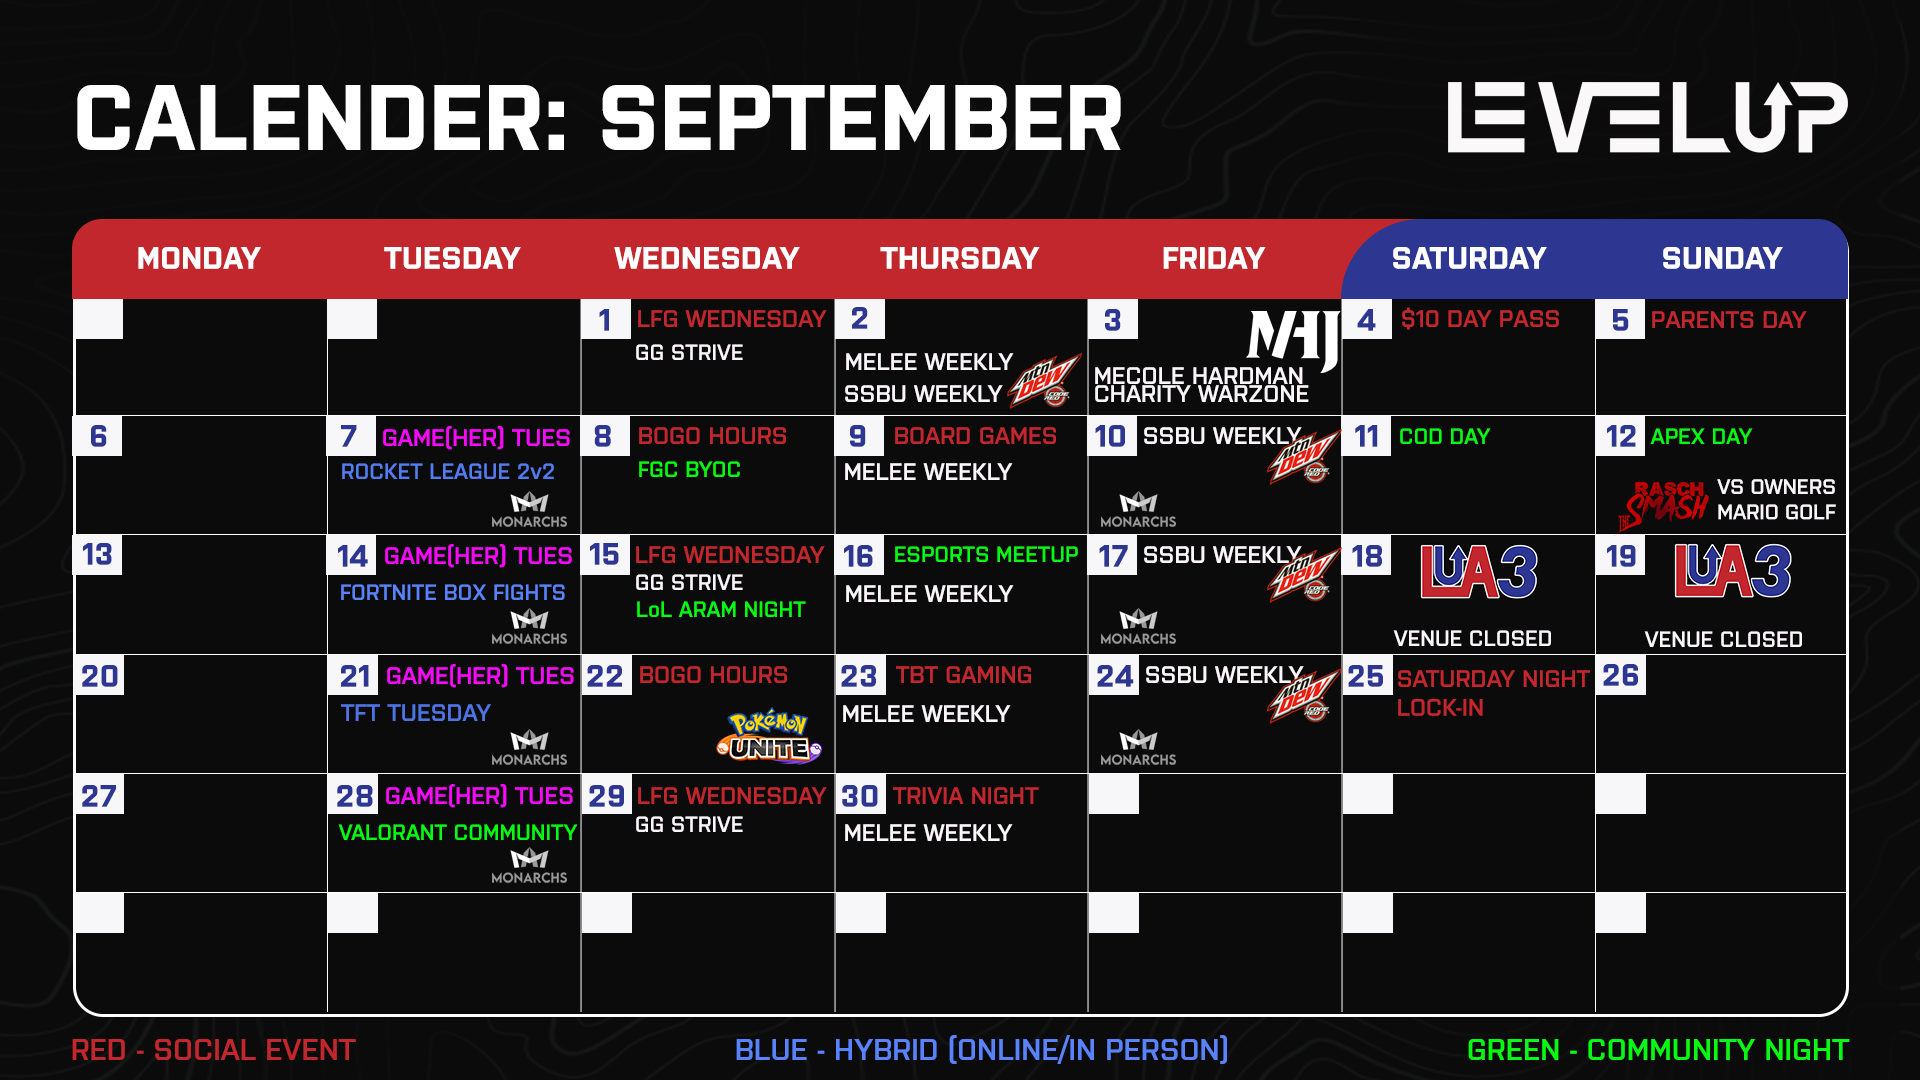 LEVELUP has a calendar full of esports events